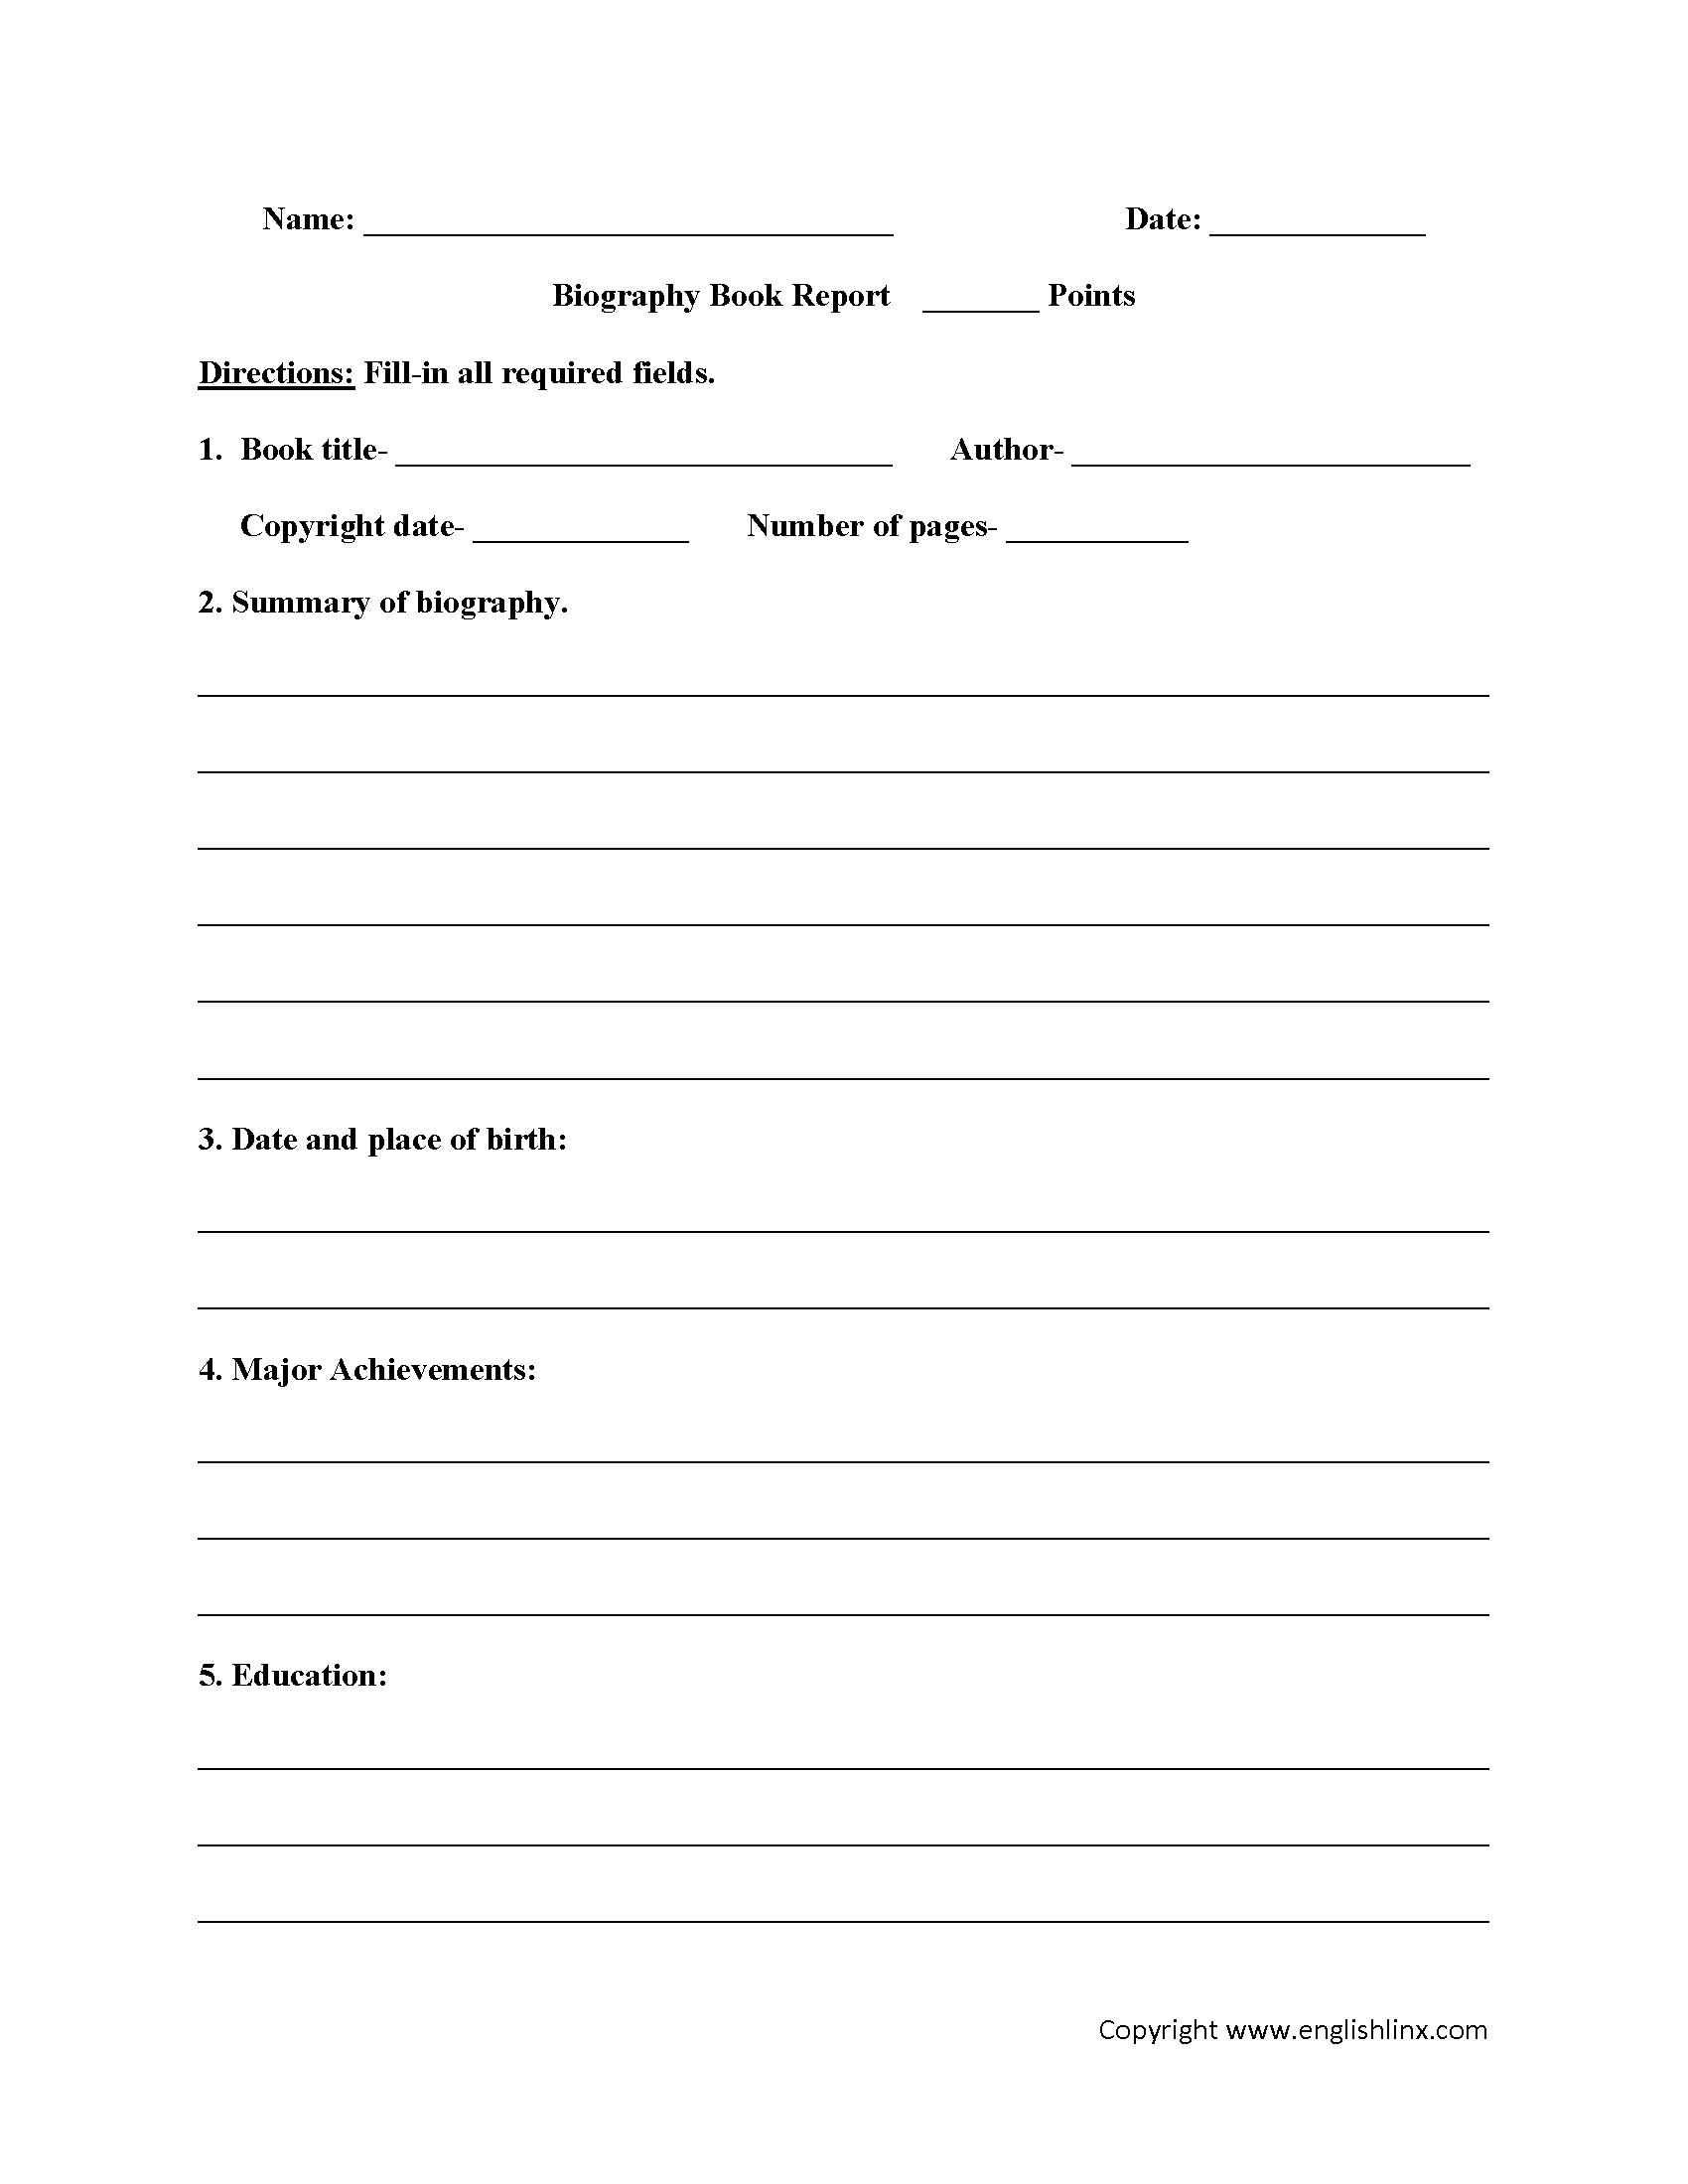 15 Best Images Of Biography Report Worksheet